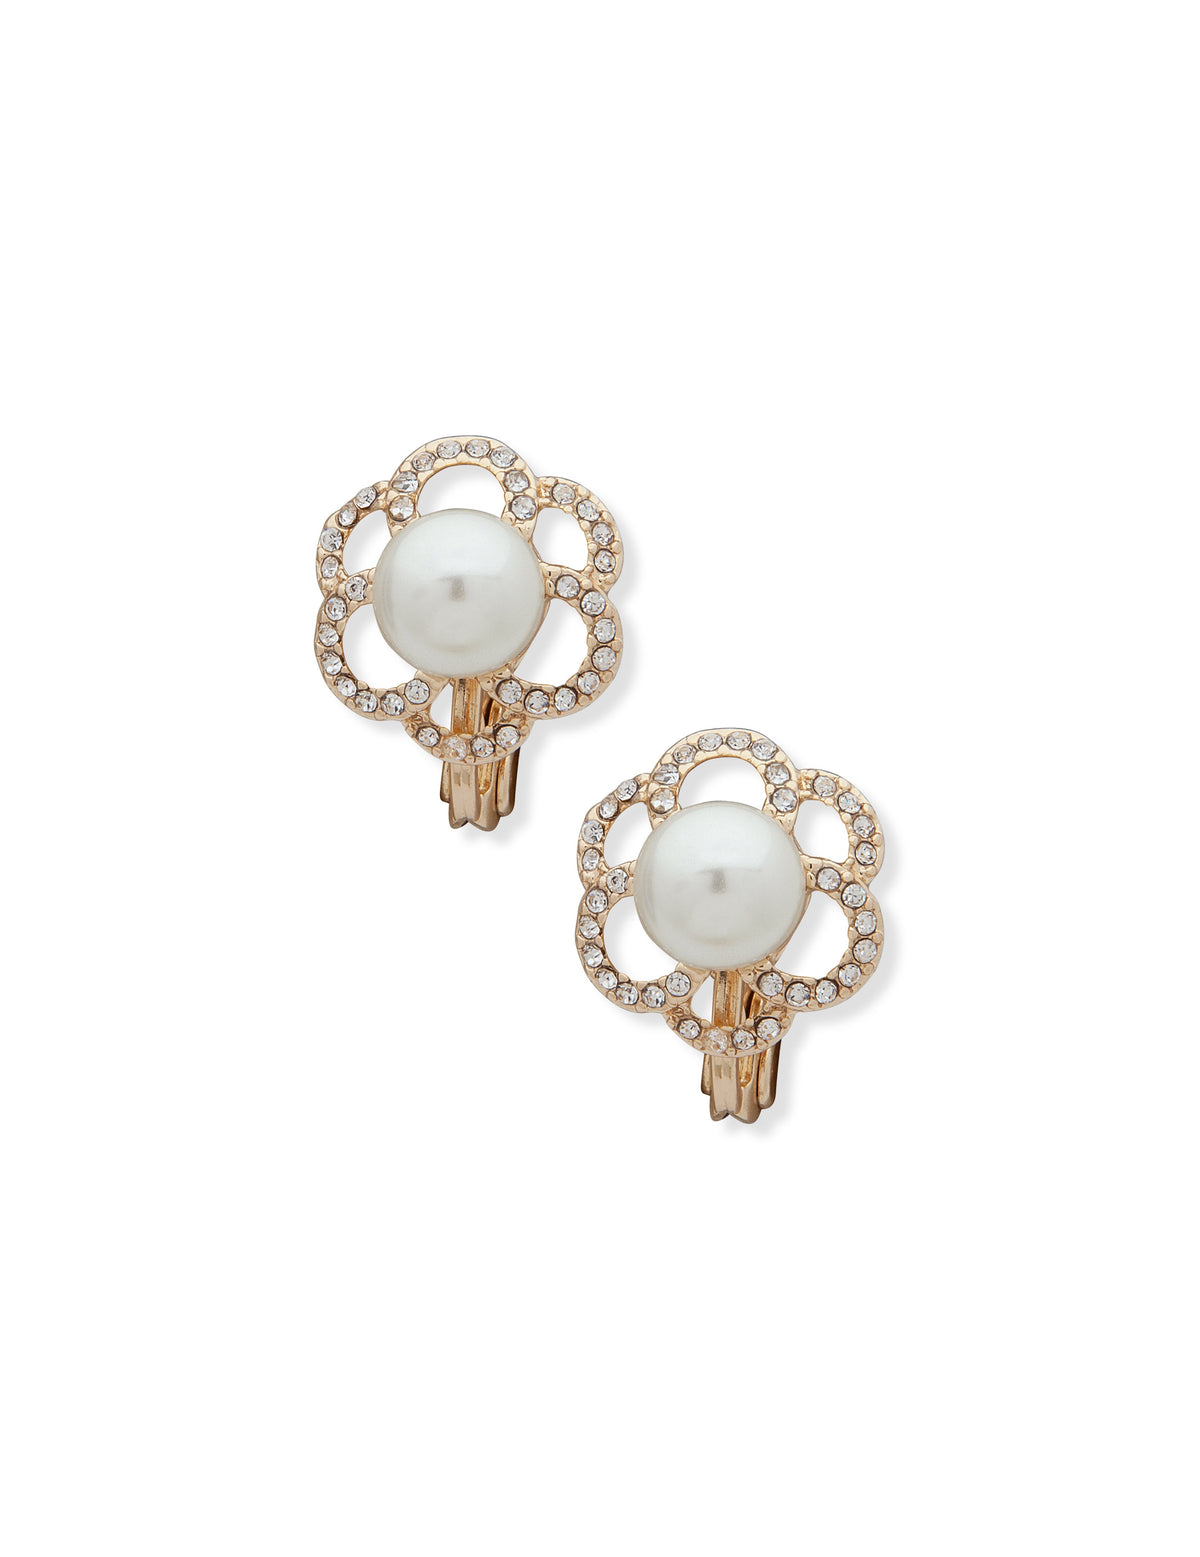 gold tone pearl button earring with open work pave rim and clip closure